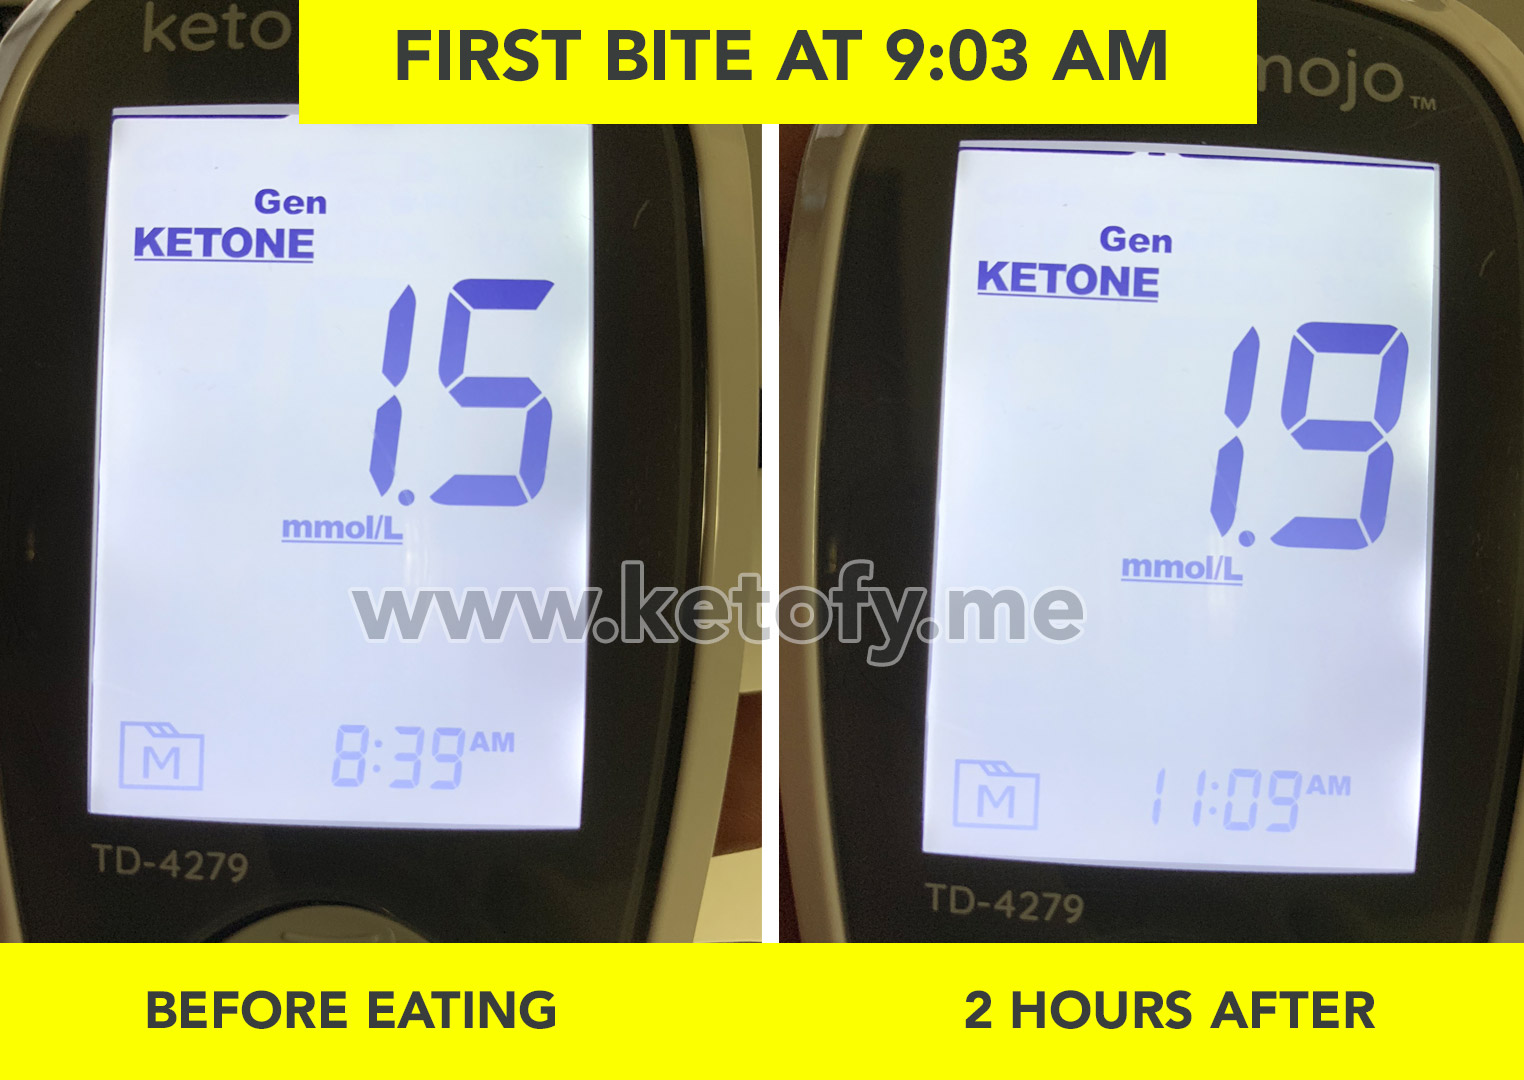 KETOFY.ME - KNOW FOODS KETONE TEST RESULTS